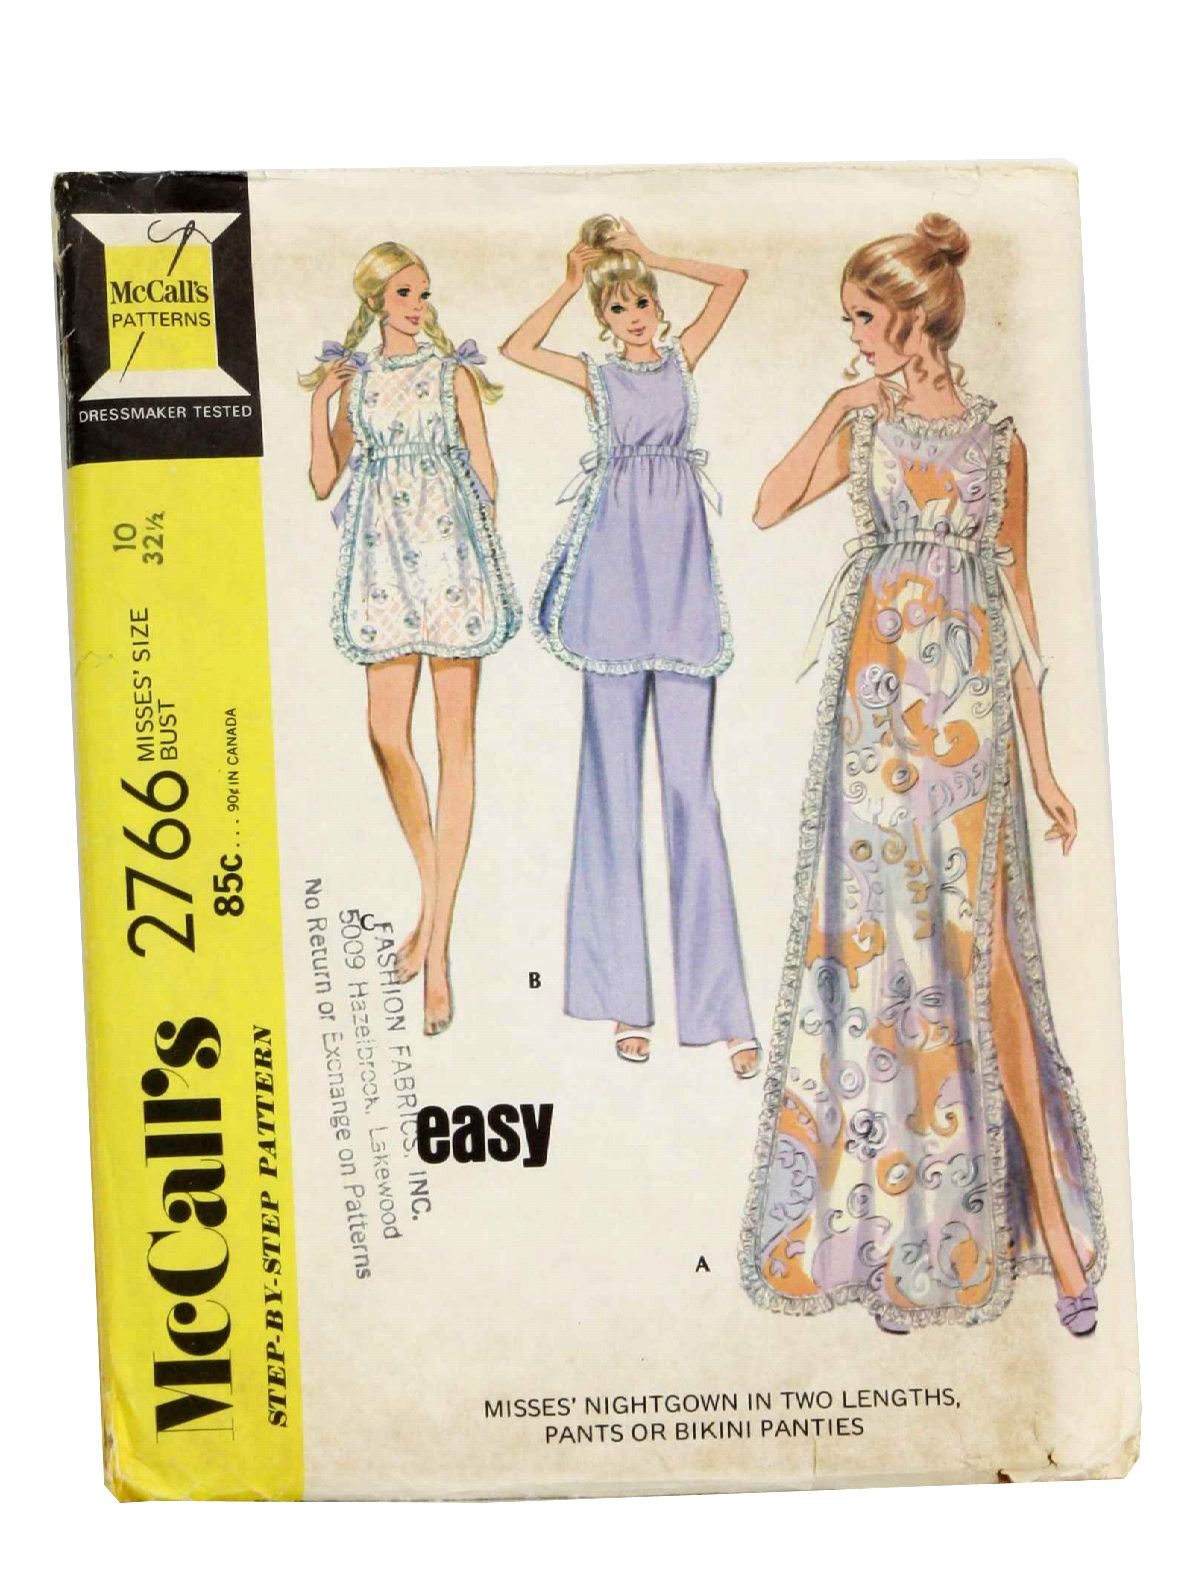 Retro 1970s Sewing Pattern: 70s -McCalls No. 2766- Womens nightgown ...